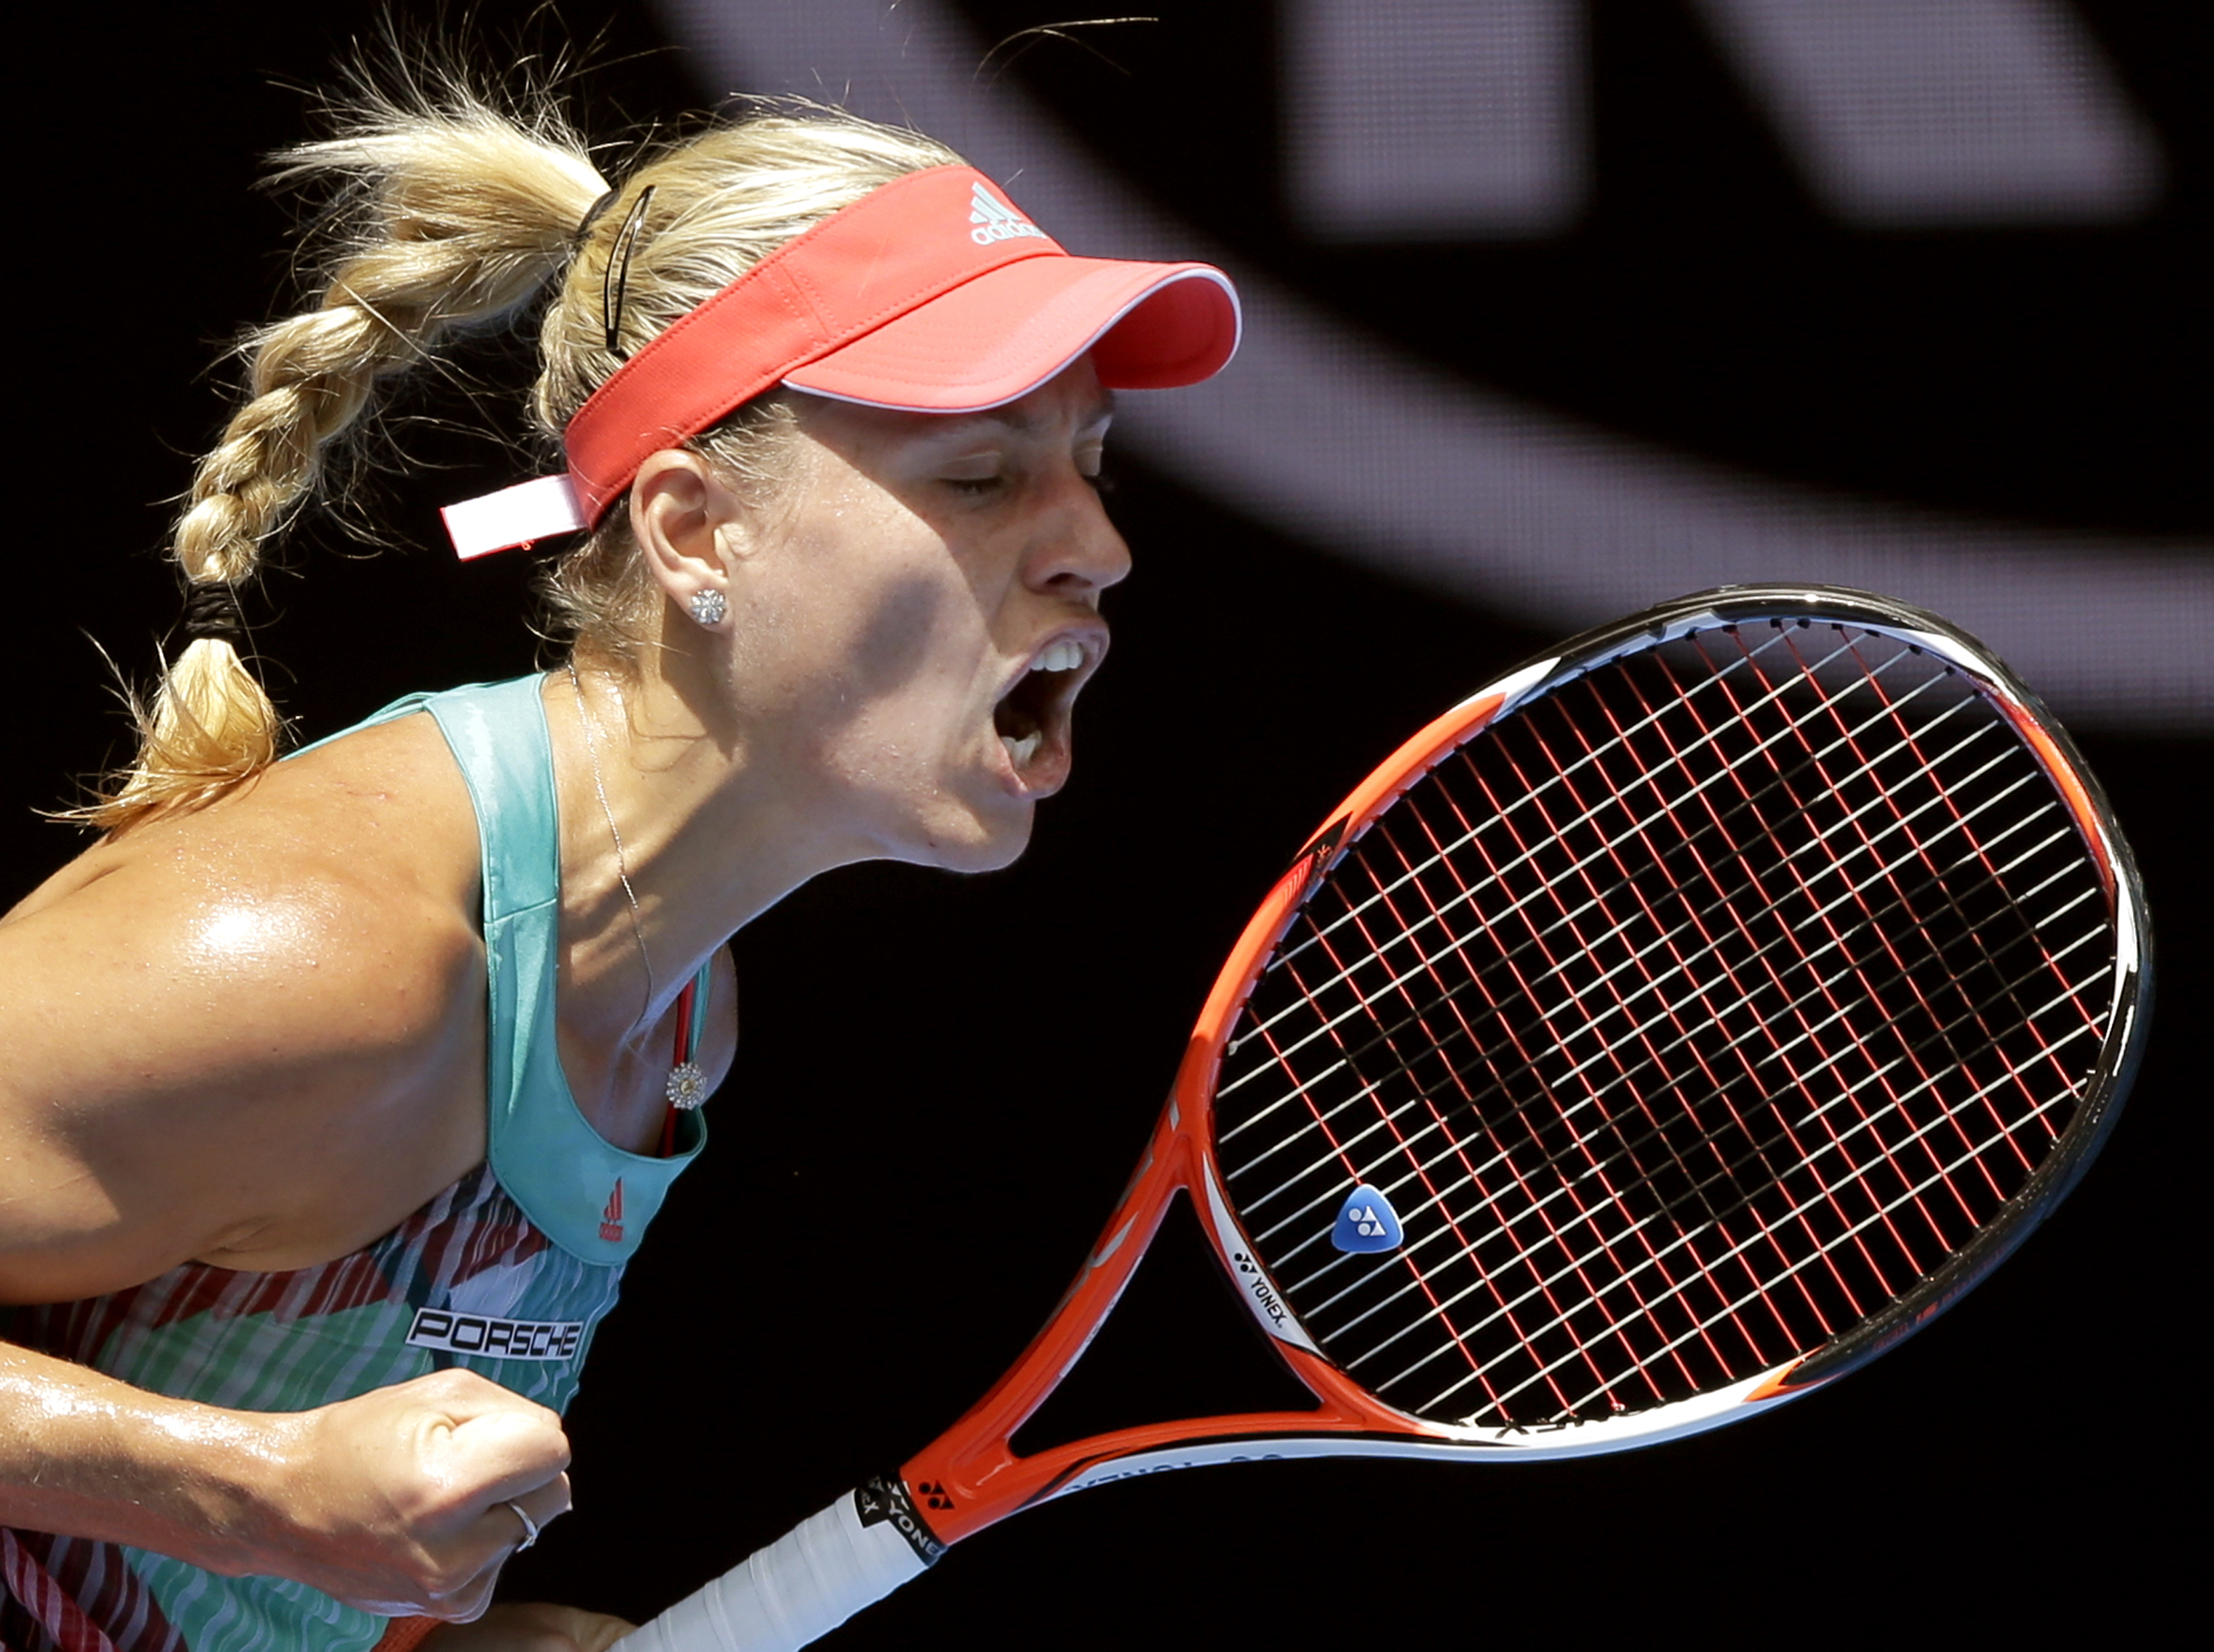 Angelique Kerber of Germany celebrates after winning a point against Victoria Azarenka of Belarus during their quarterfinal match at the Australian Open tennis championships in Melbourne, Australia, Wednesday, Jan. 27, 2016.(AP Photo/Aaron Favila)